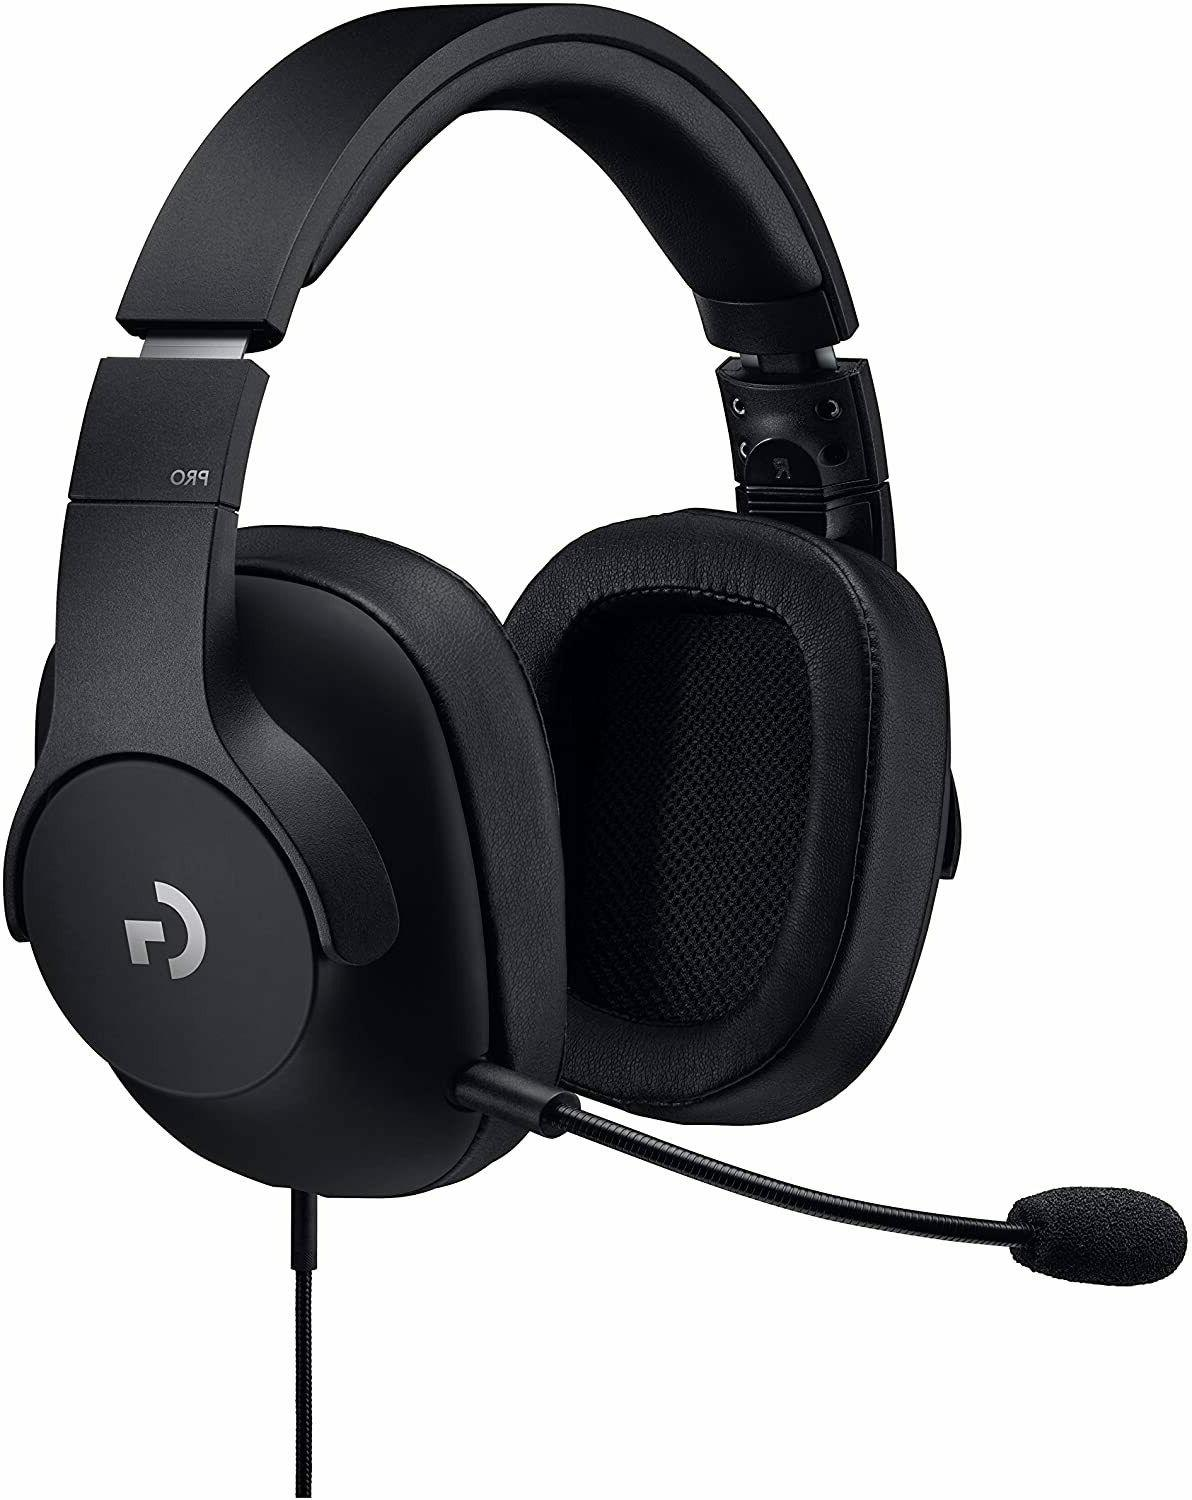 5d00e80f95b Logitech G Pro Gaming Headset with Pro Grade